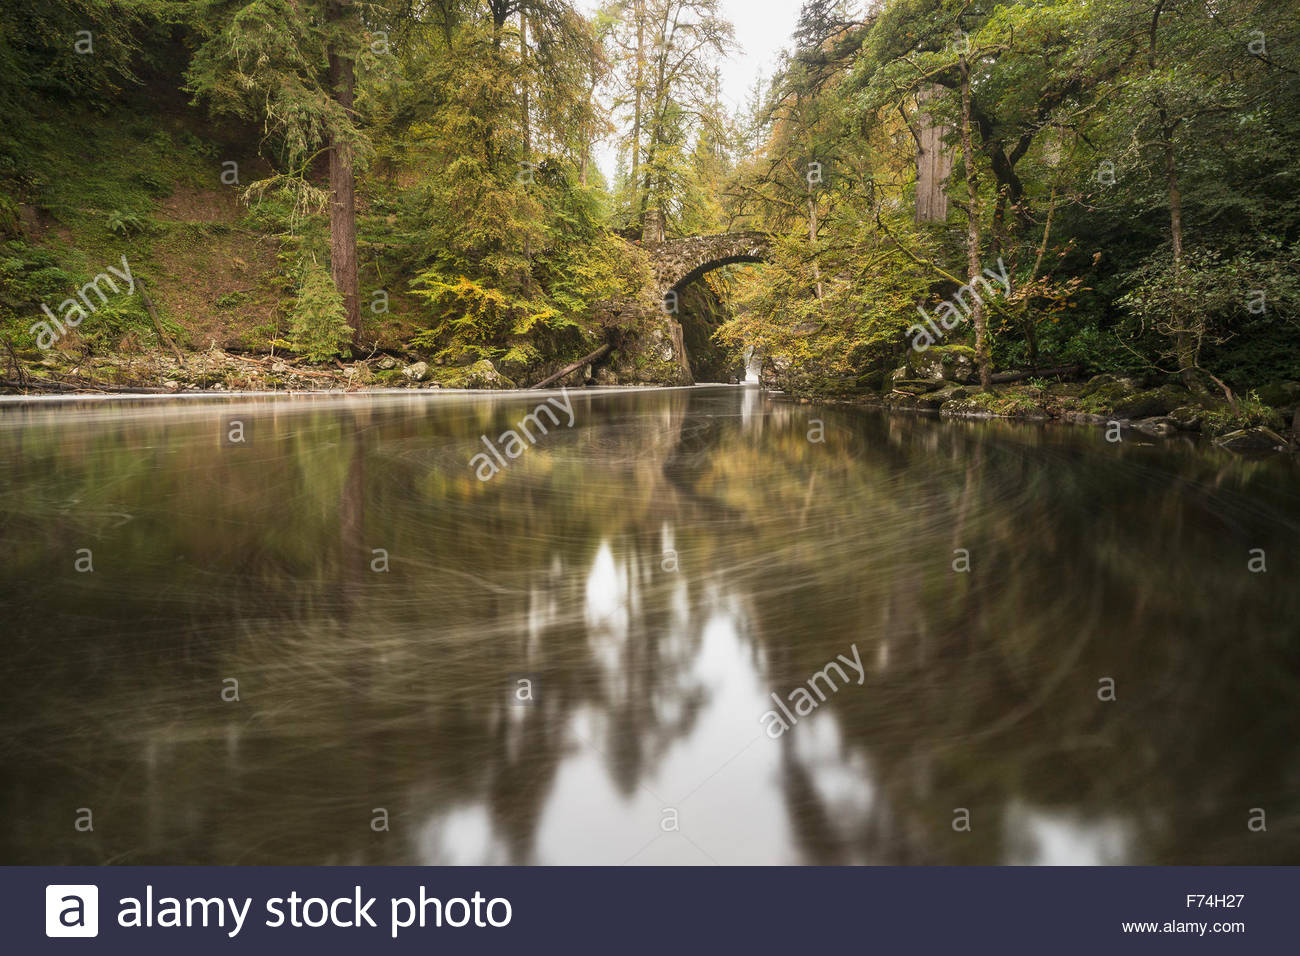 Swirls in the course of the River Braan at the Hermitage, Dunkeld, Perthshire, Scotland. - Stock Image